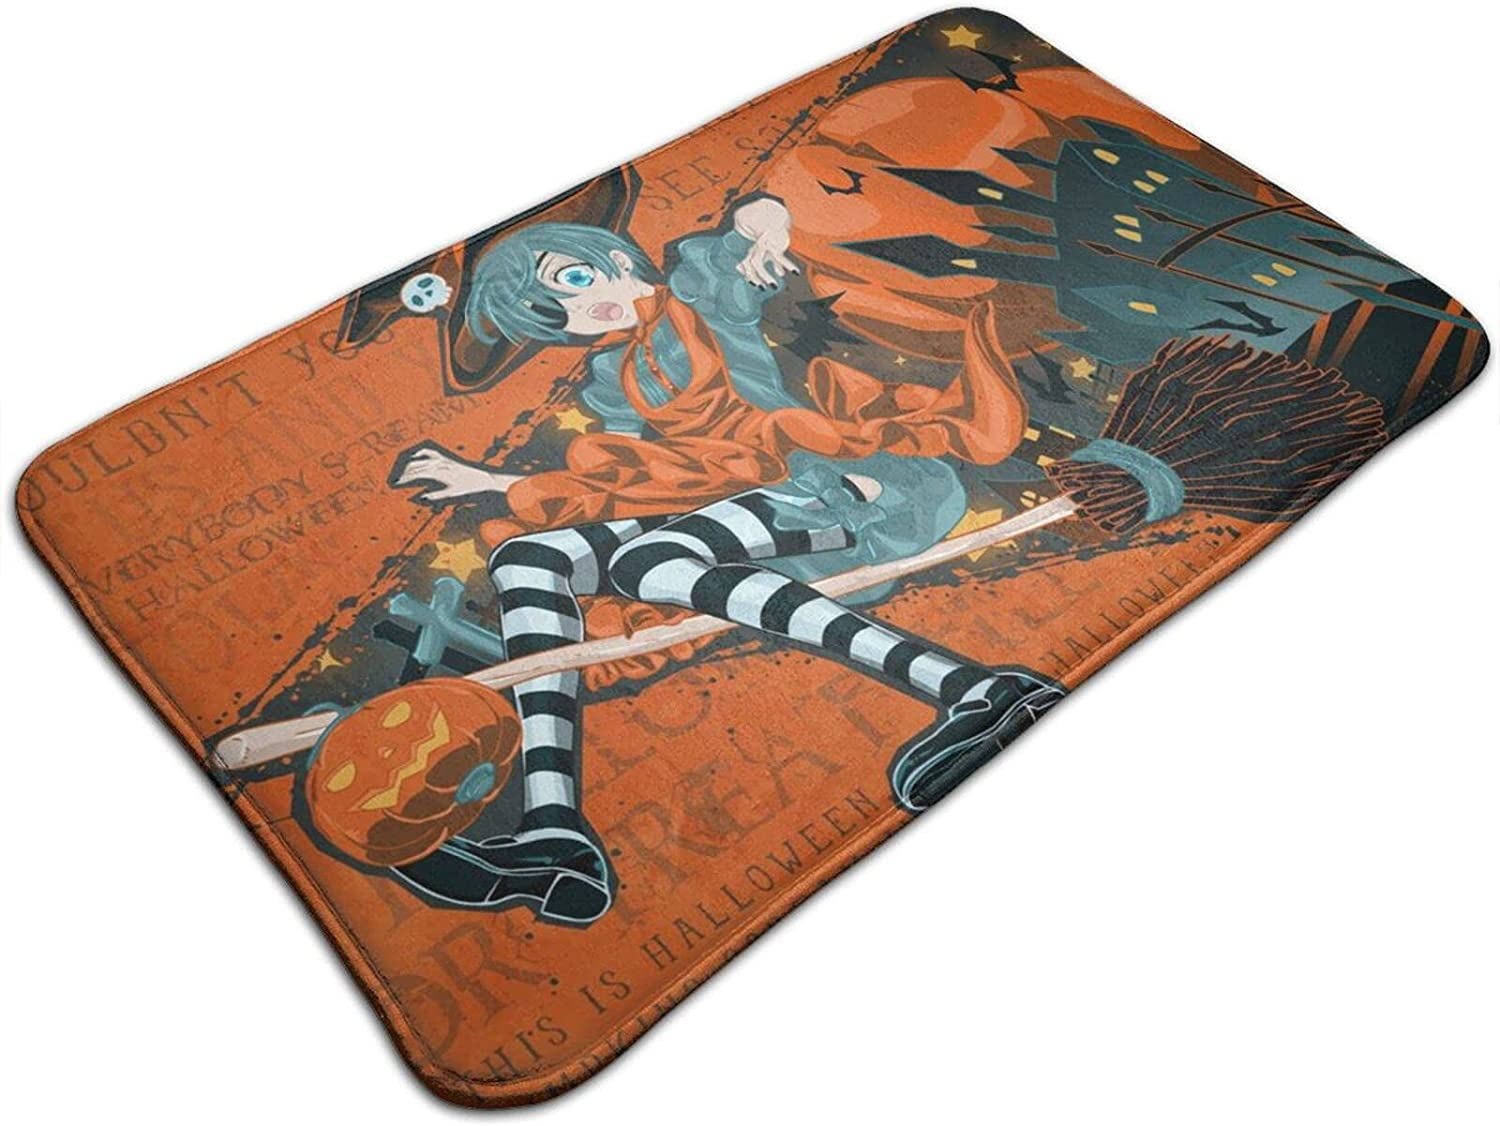 Classic Awesome Black Butler Halloween Wizard Premium Fashionable Durable Non Skid Doormats No Fade Multifunctional Floor Mat for Office Living Room Patio Kitchen Tub Decoration 19.5x31.5 Inch